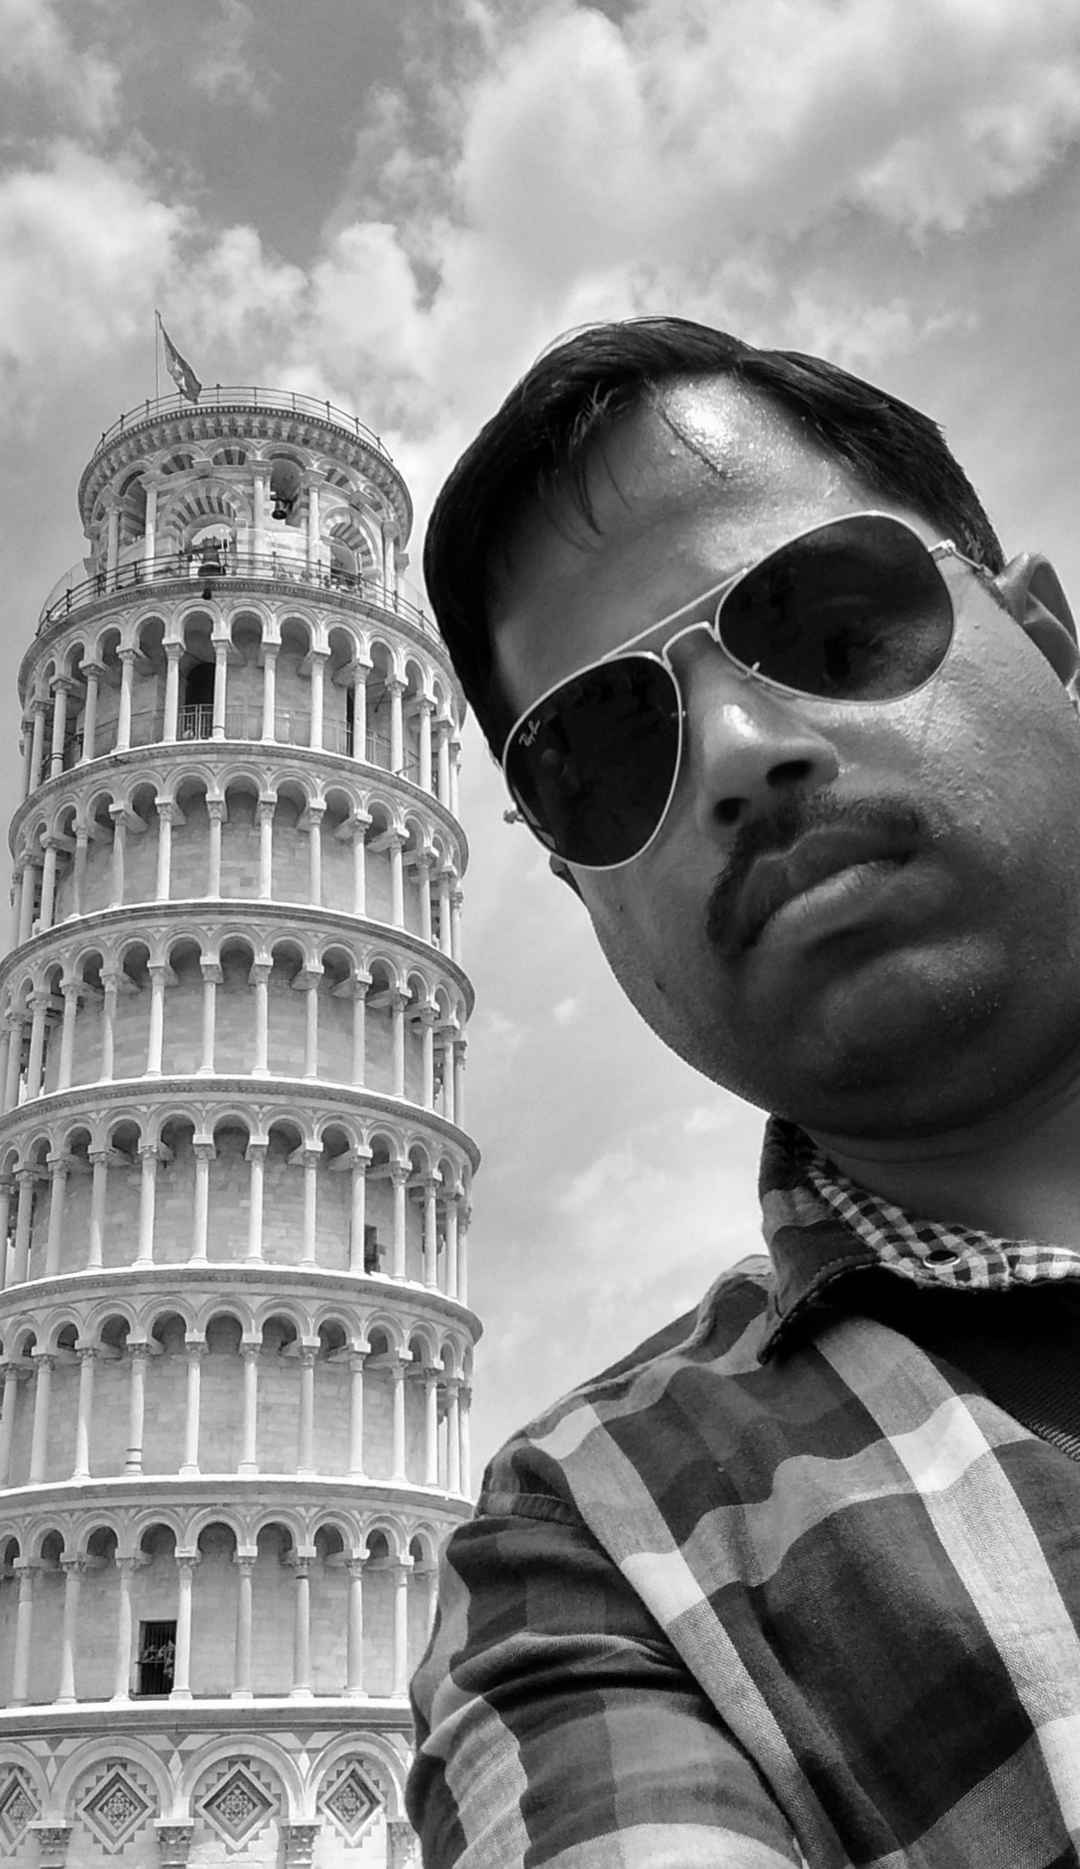 Me leaning on Pisa #SelfieWithAView  #TripotoCommunity